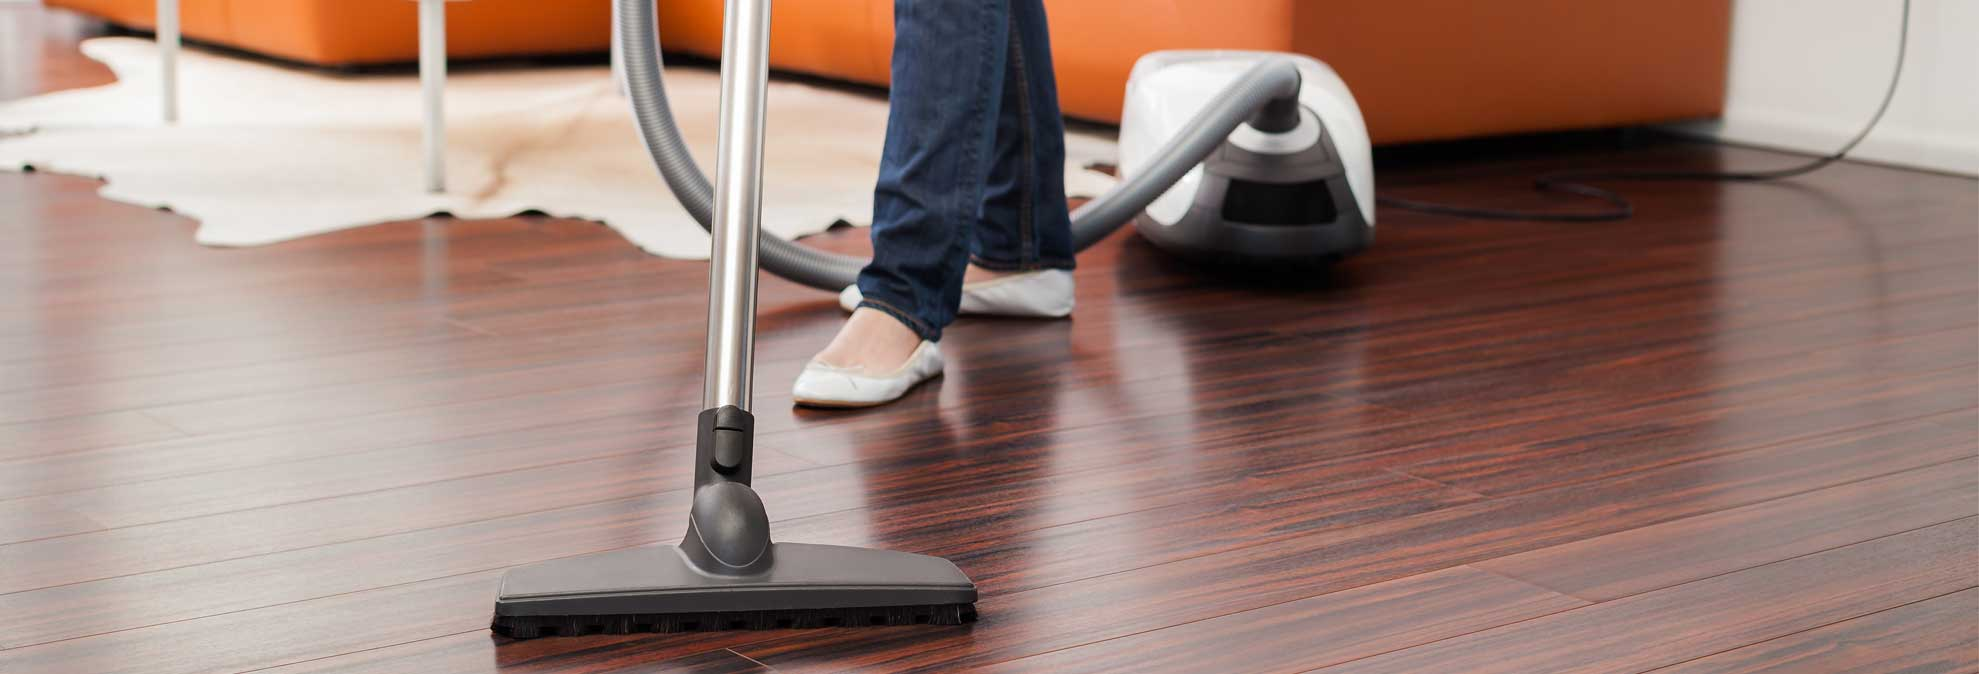 Best Vacuums of 2017 - Consumer Reports